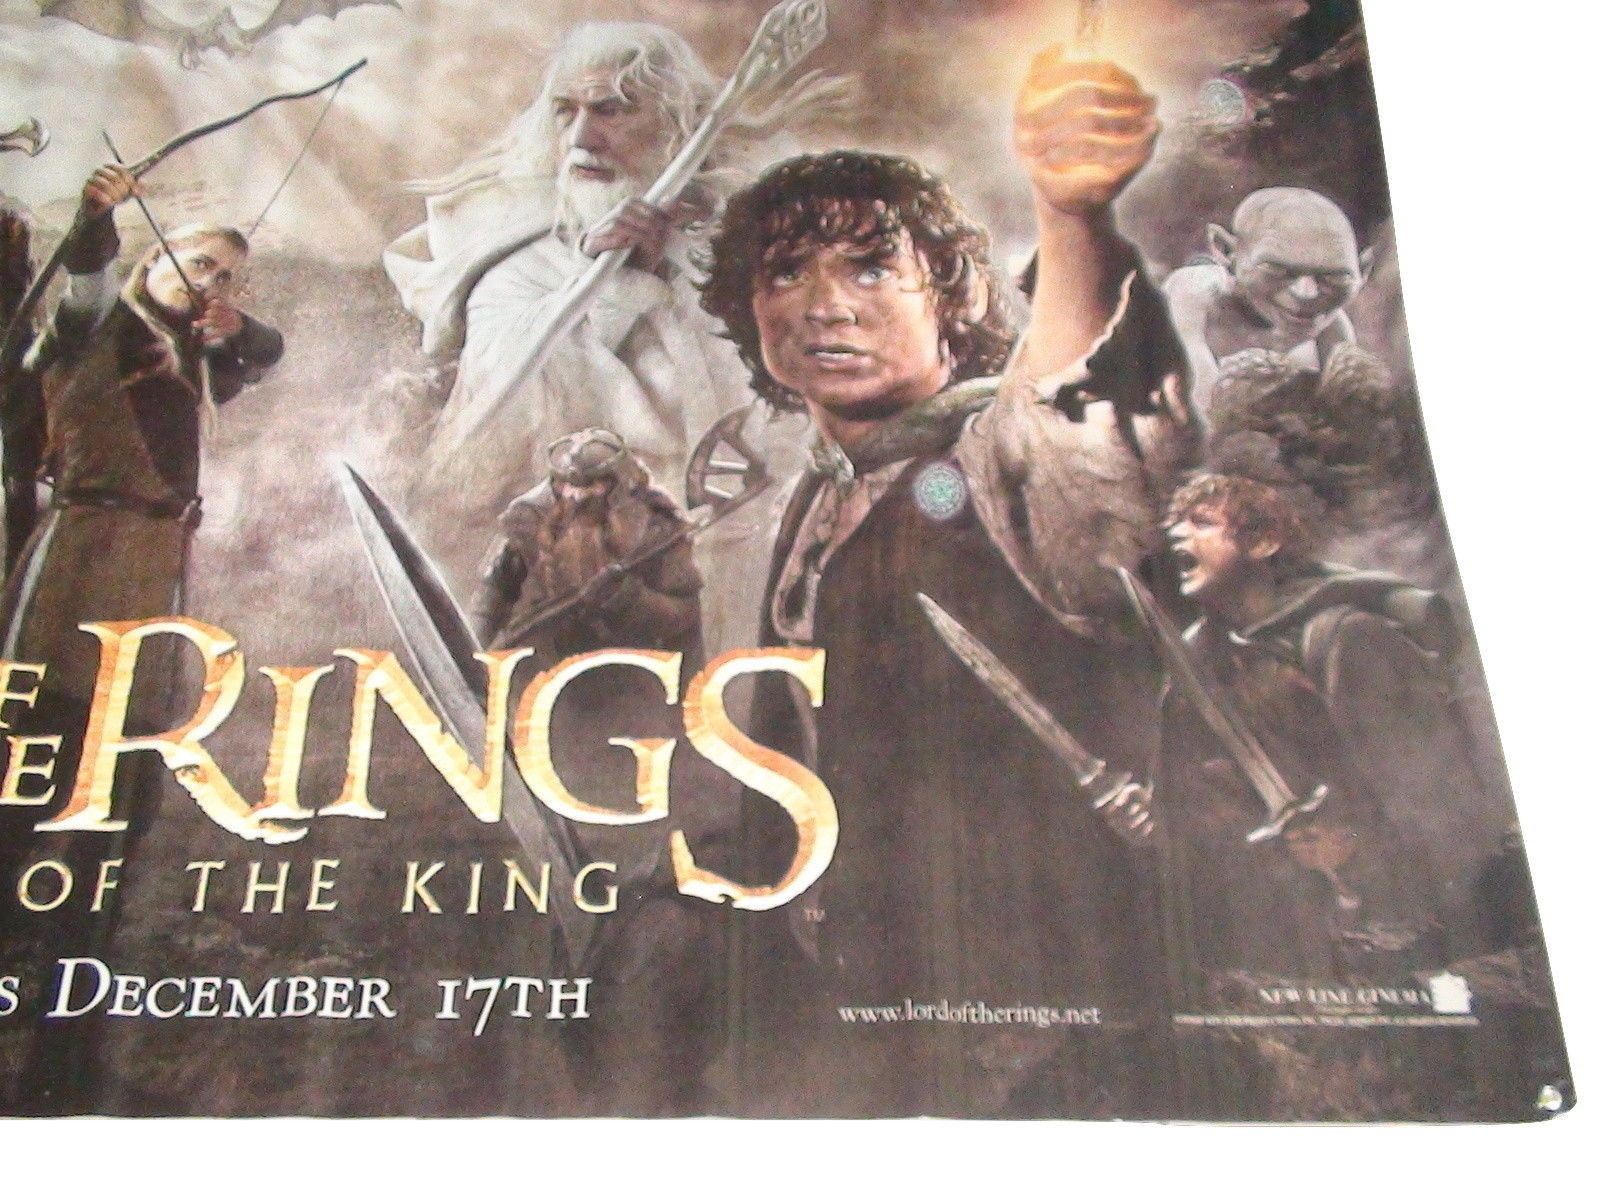 2003 LOTR: RETURN OF THE KING Original Vinyl Movie Theater Banner 118x60 (25)